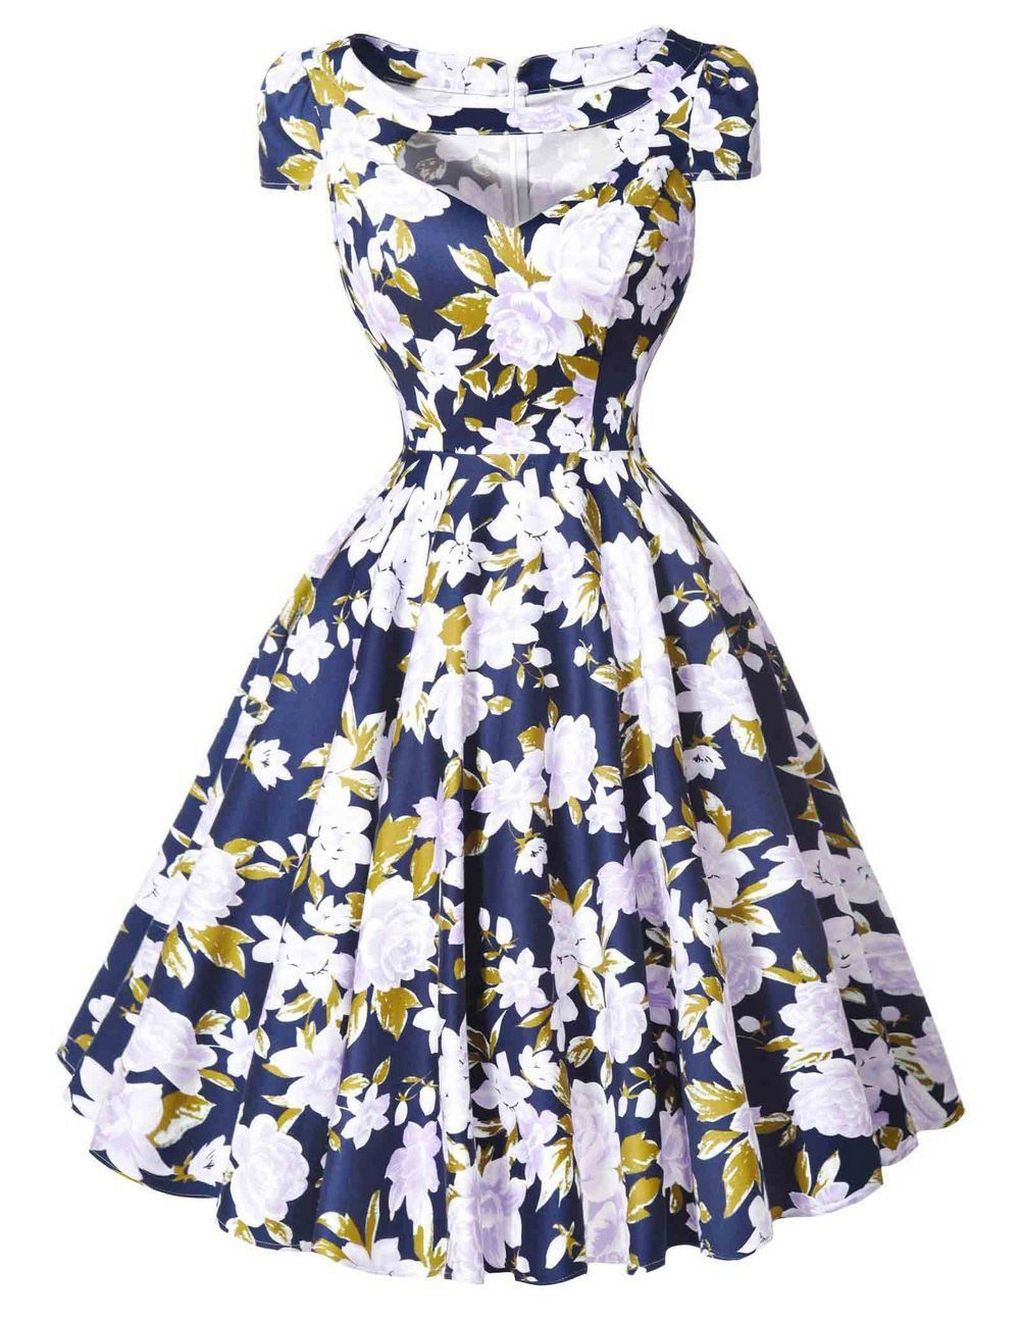 70+ Cute Casual Retro Dresses Inspired Women\'s Style